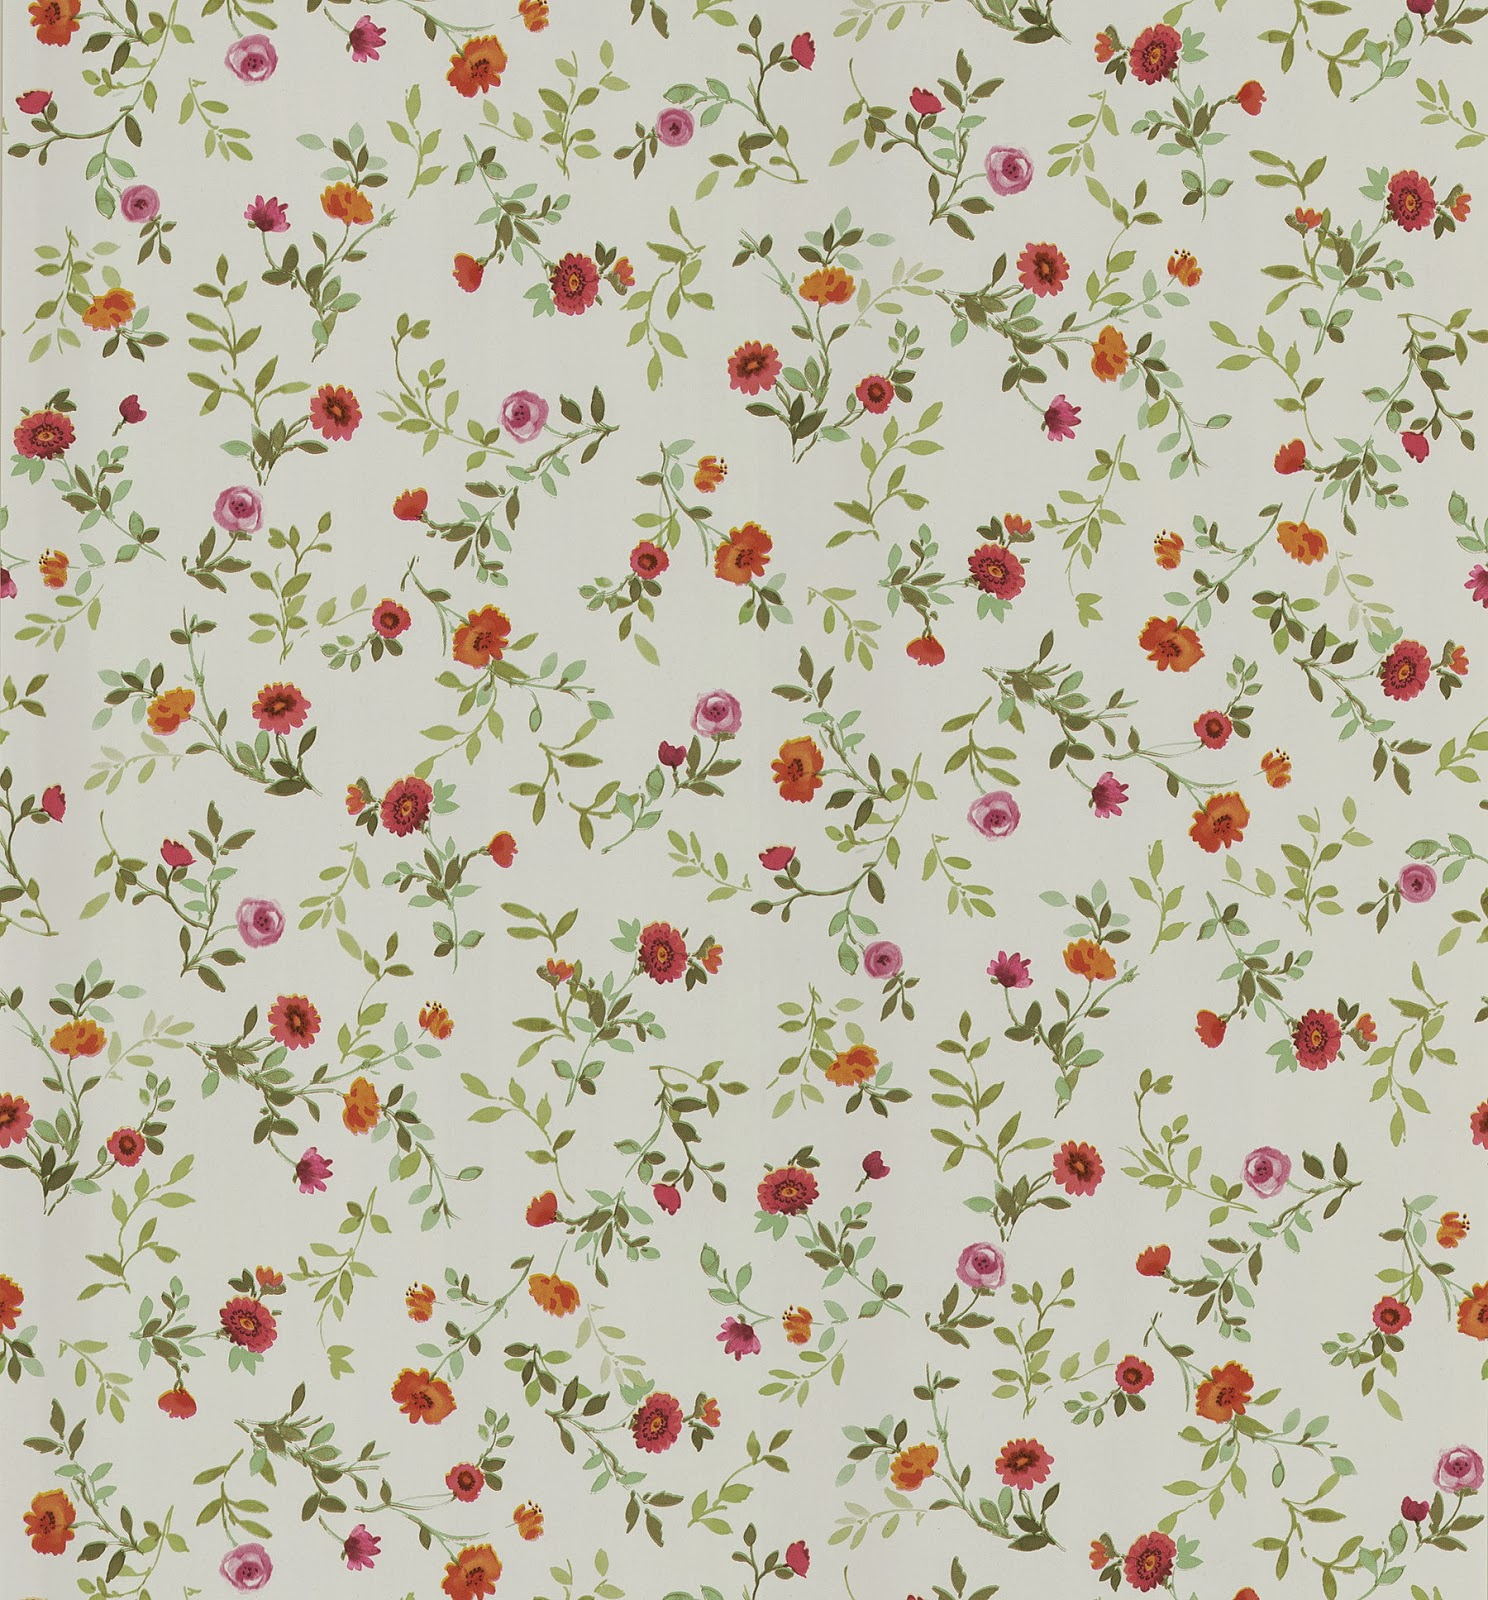 Hwfd Vintage Floral Desktop Wallpaper High Quality Wallpaper